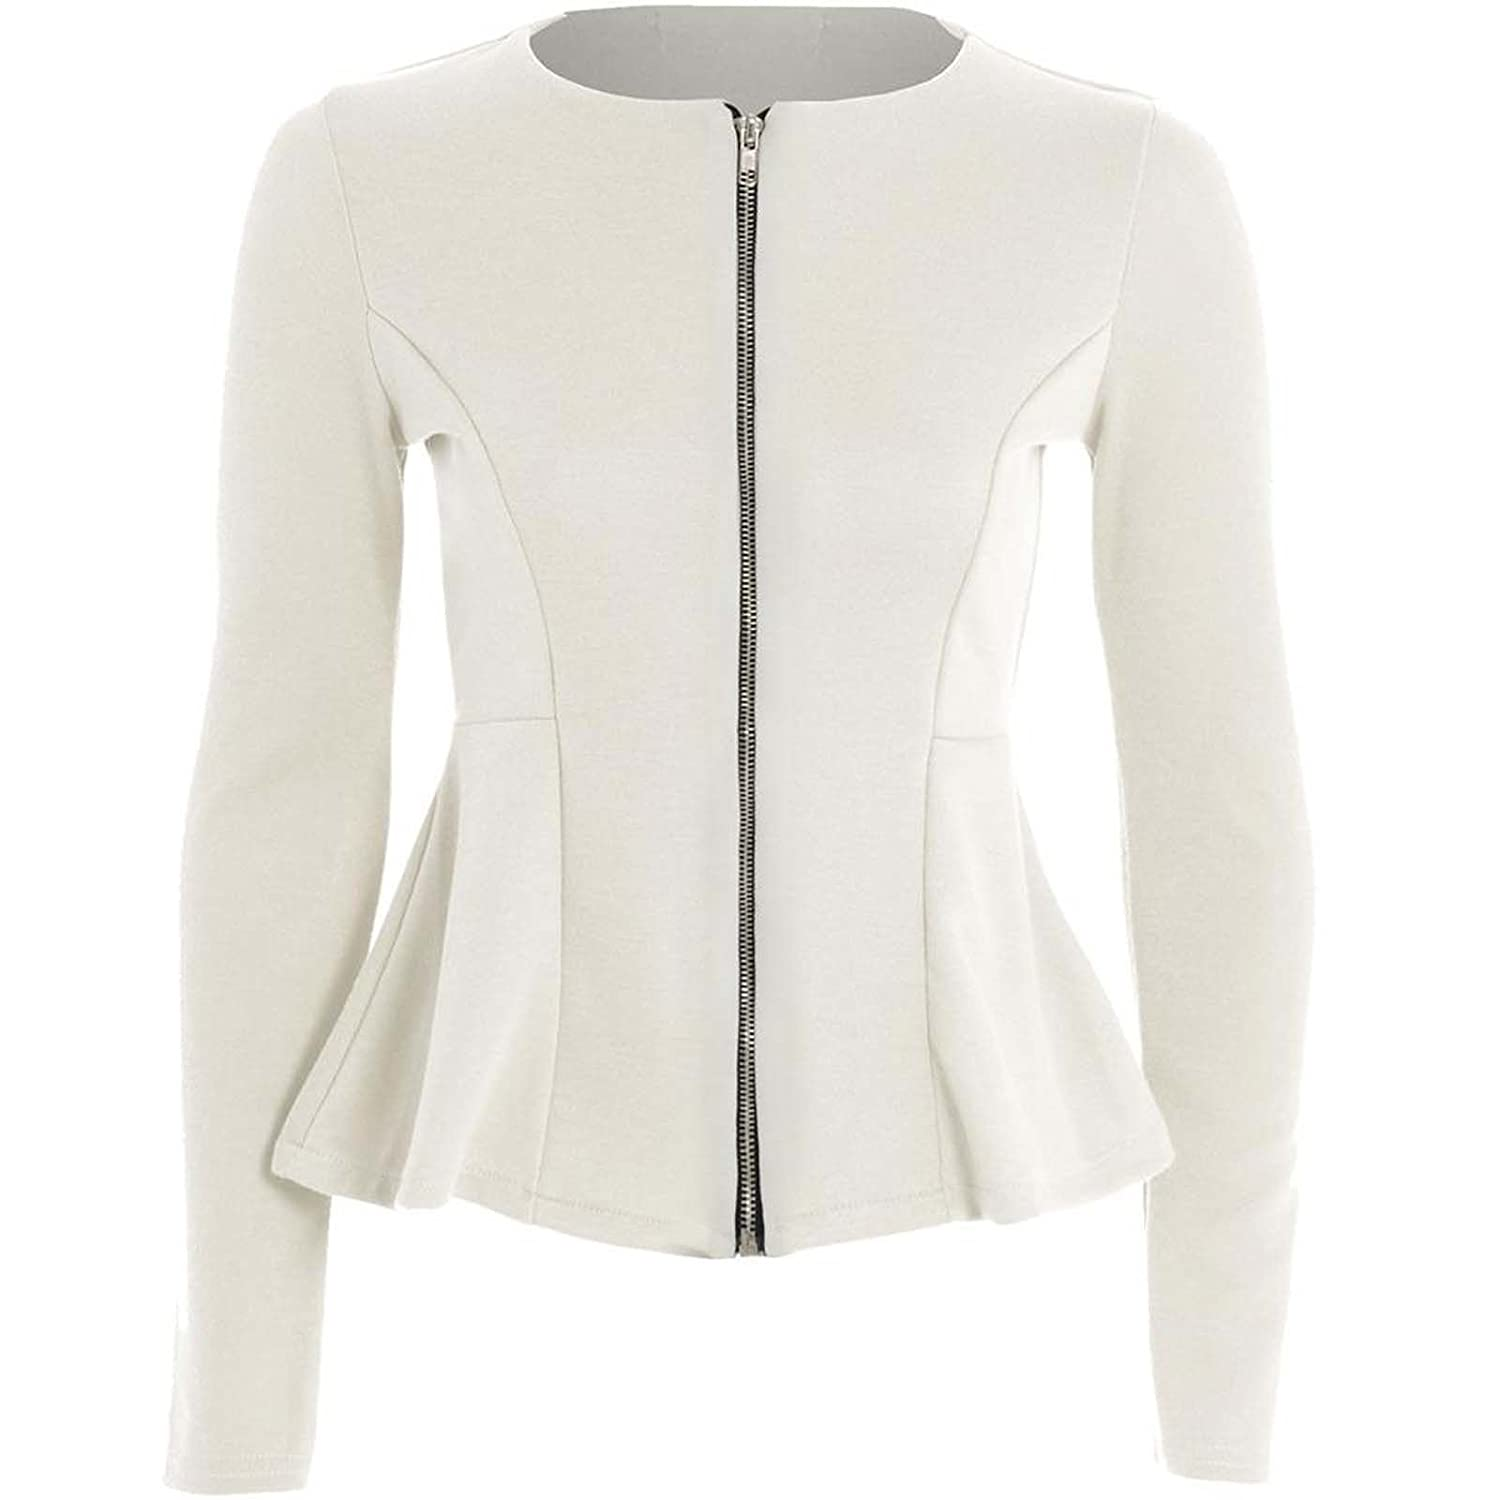 New Women Ladies Plain Zip Peplum Frill Tailored Blazer Jacket ...